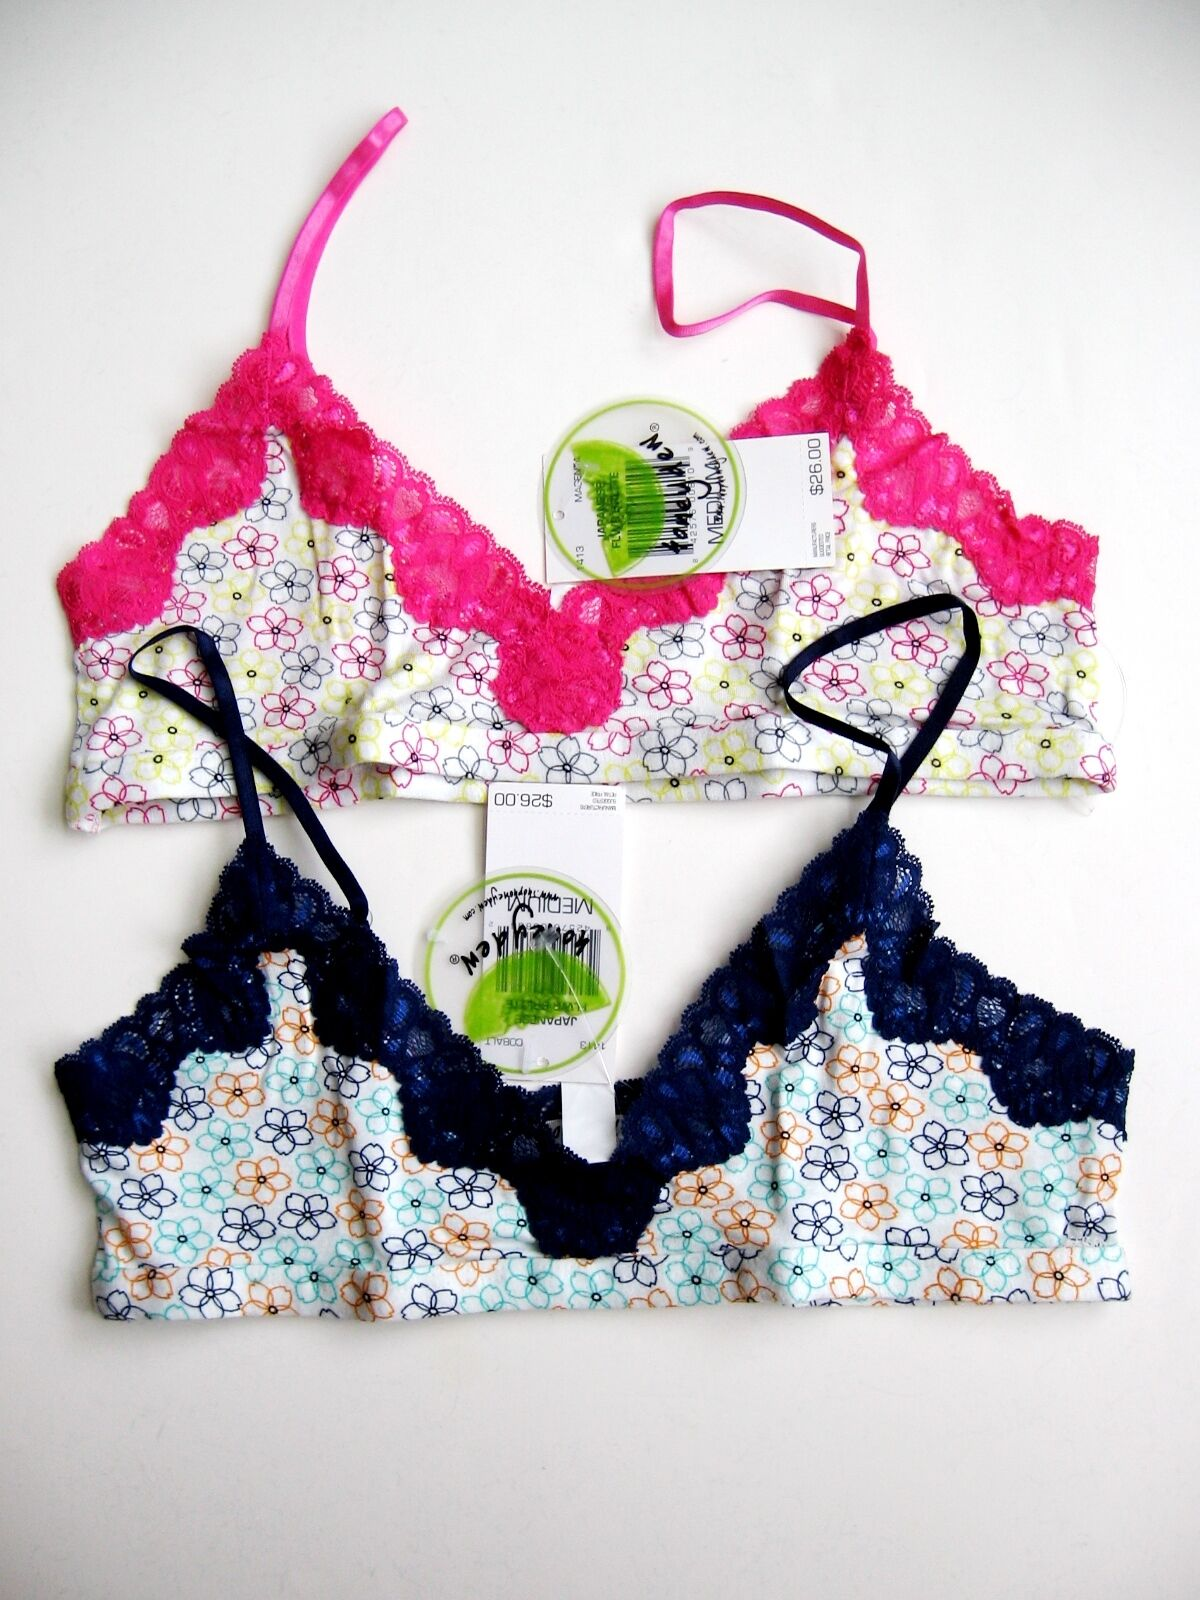 www.prominentresults.com :A273 Honeydew Intimates NEW 1413 Luxurious Lace Trim Japanese Flower Bralette PR